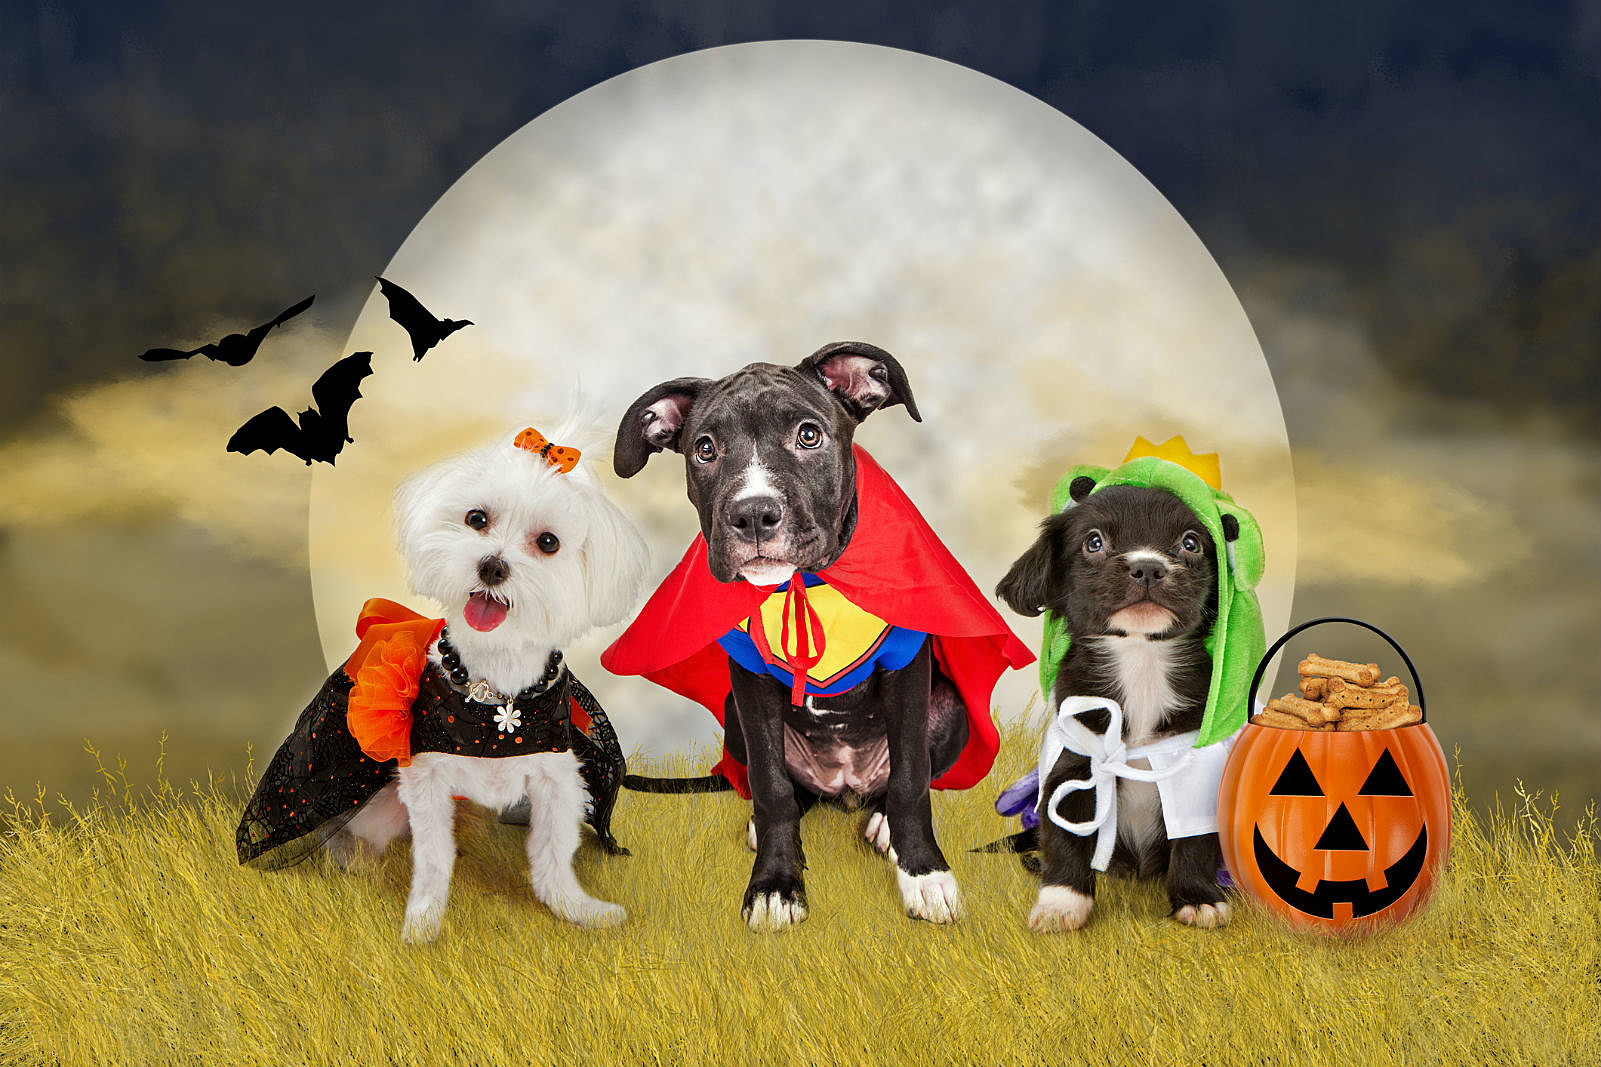 show us your pet's halloween costume and win!